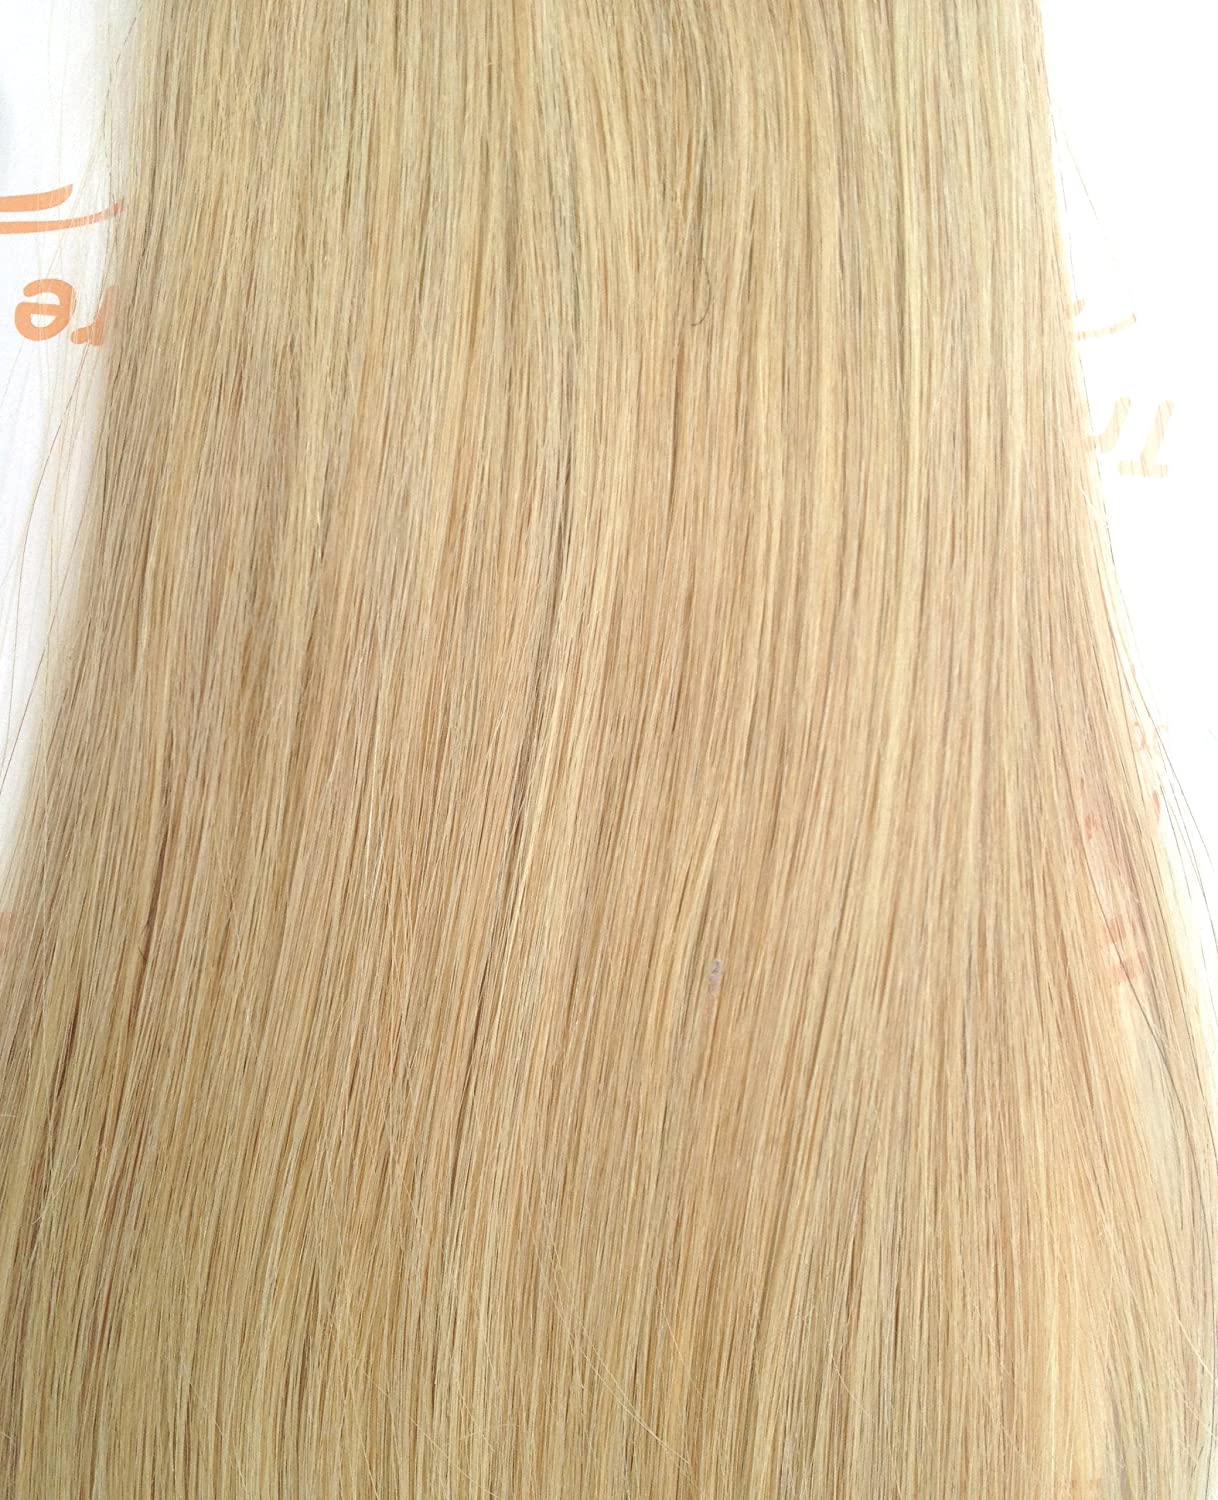 Tressmatch human hair clip extensions champagne blonde preen tressmatch human hair clip extensions champagne blonde pmusecretfo Image collections